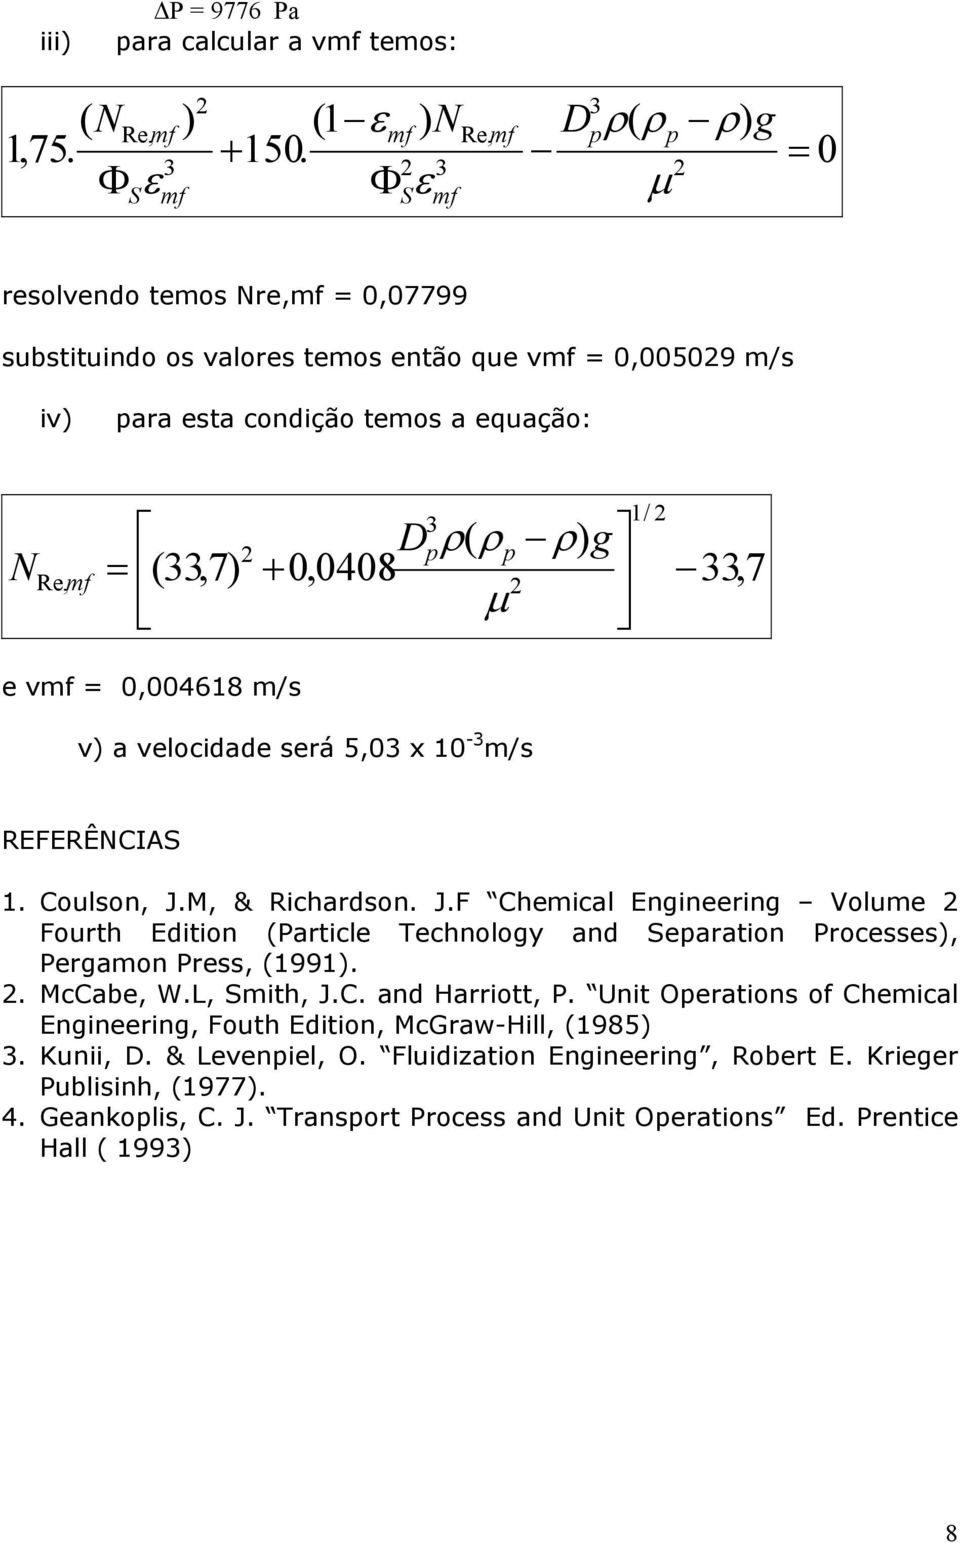 m/s v) a velocidade será 5,0 x 0 - m/s REFERÊNCIA. Coulson, J.M, & Richardson. J.F Chemical Engineering Volume Fourth Edition (Particle Technology and eparation Processes), Pergamon Press, (99).